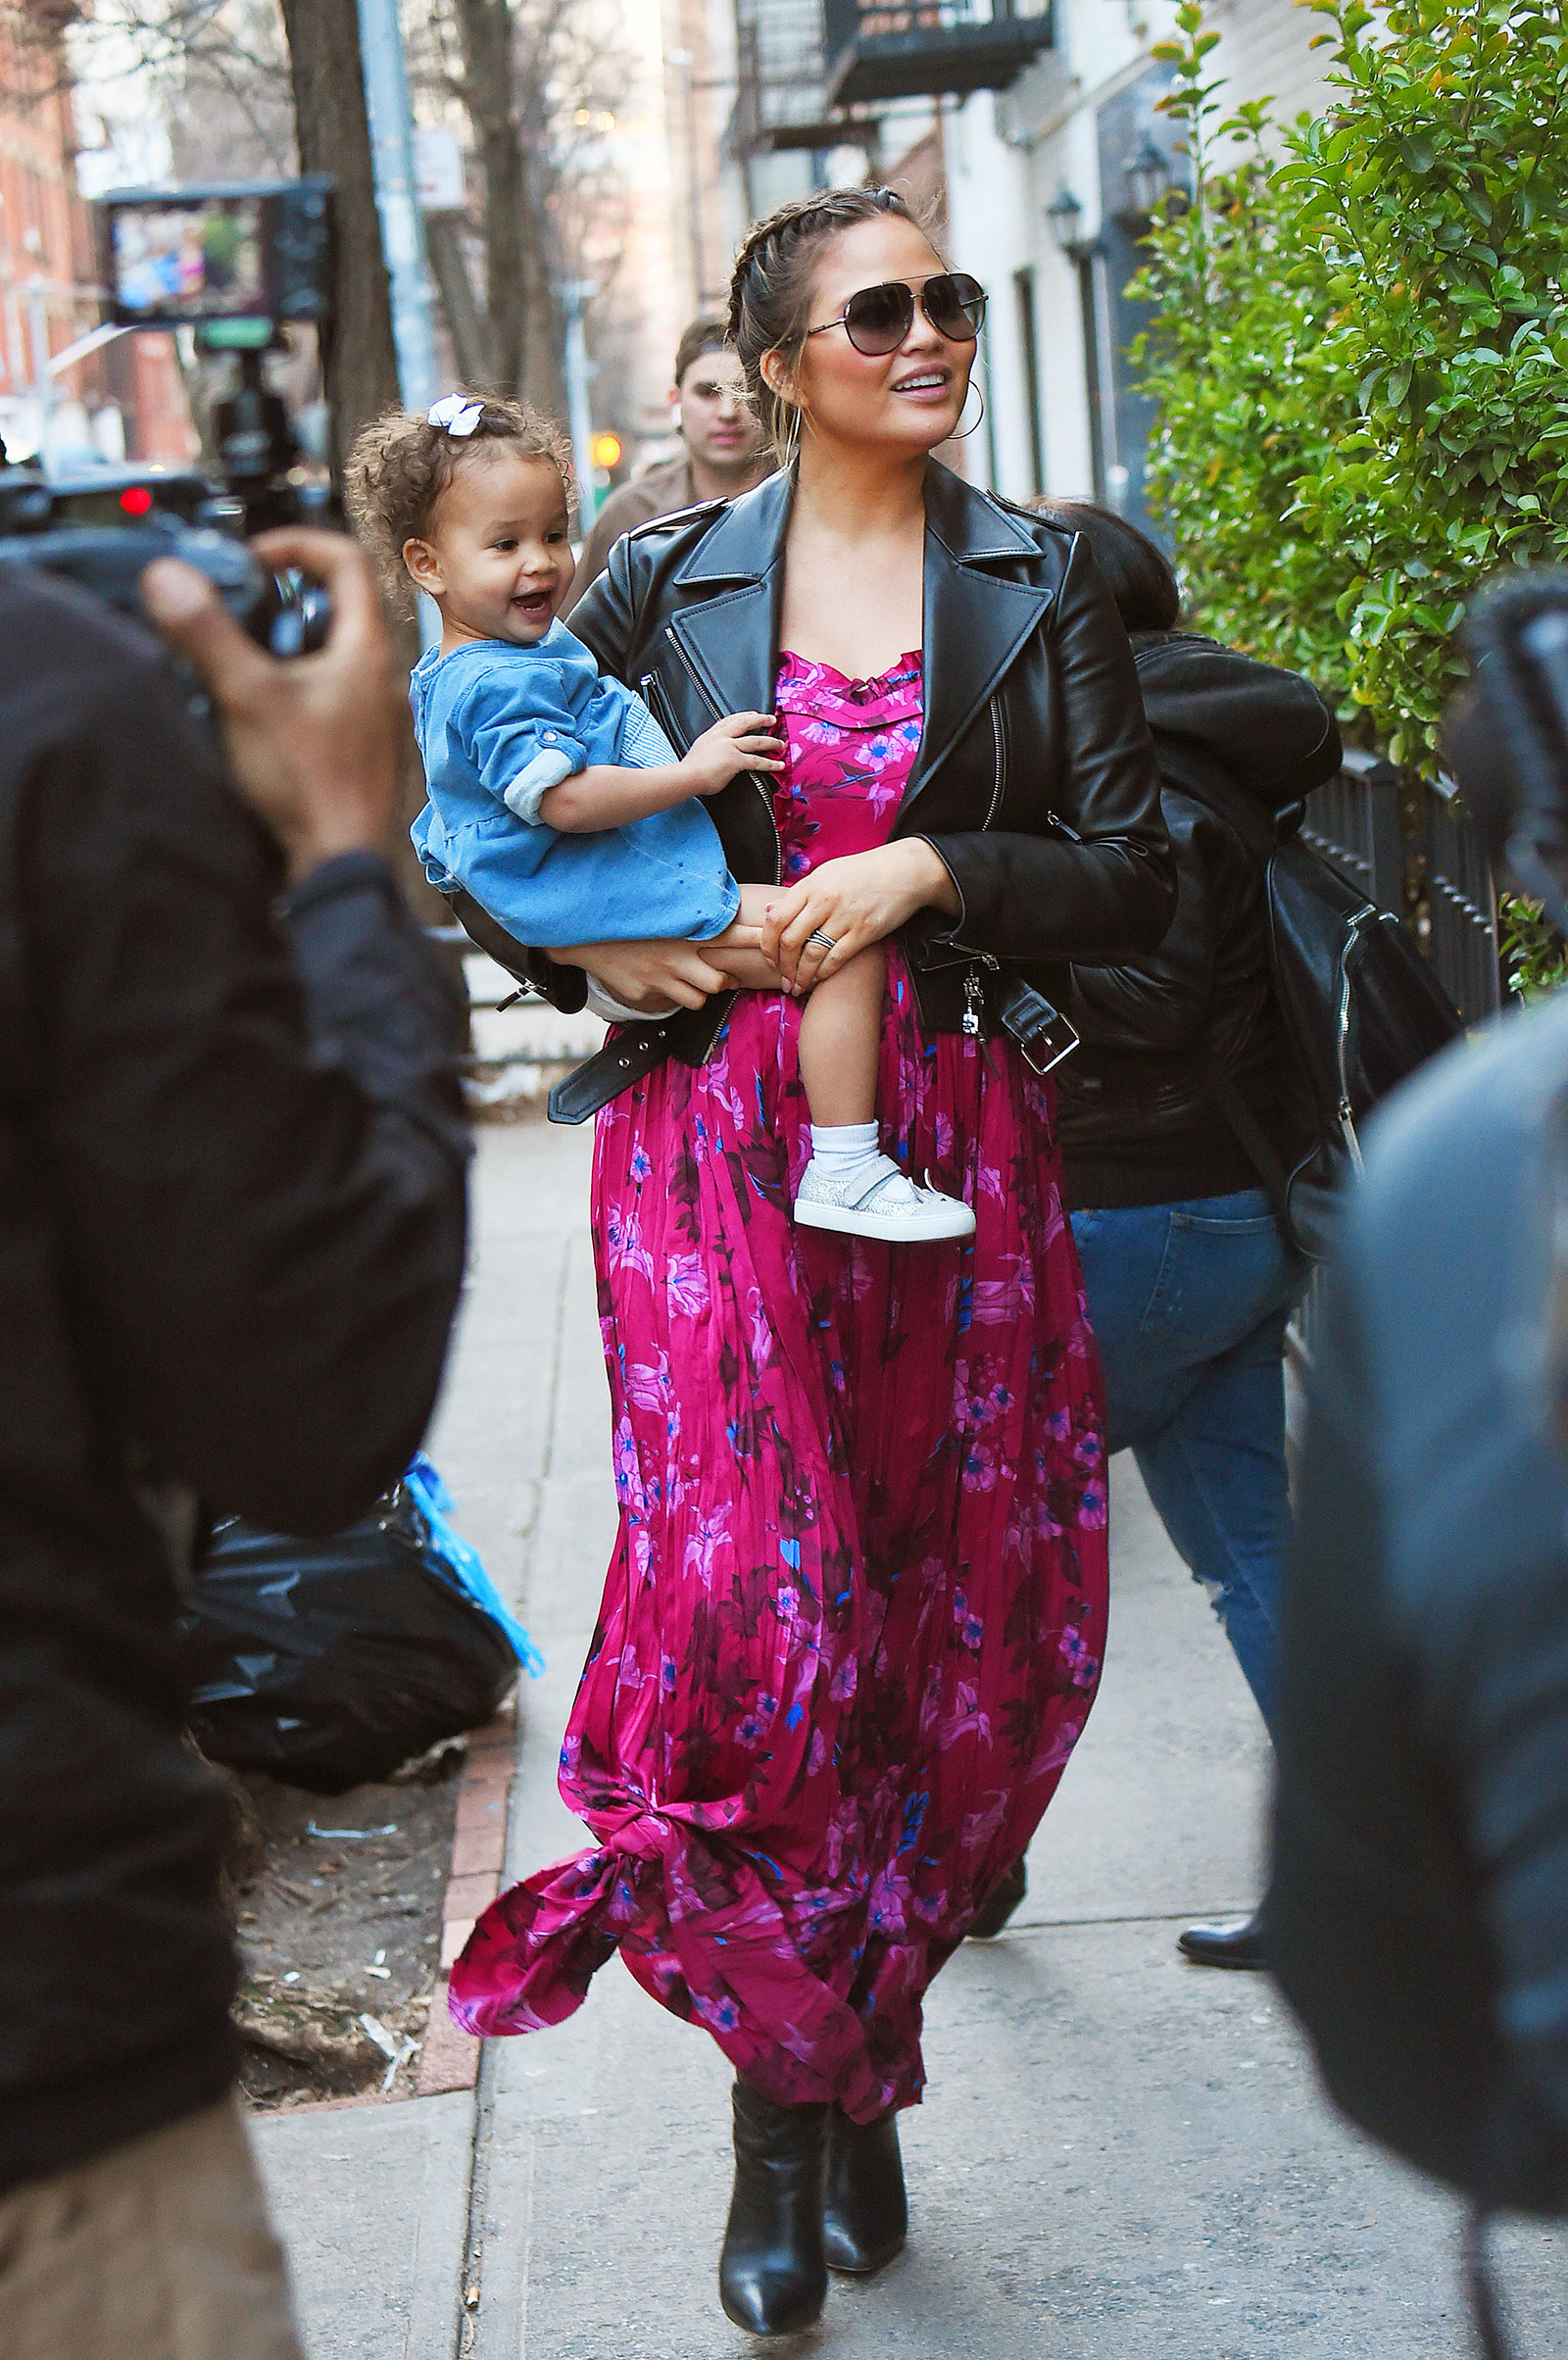 Chrissy Teigen's pregnancy style featuring floral maxi dress and black leather moto jacket